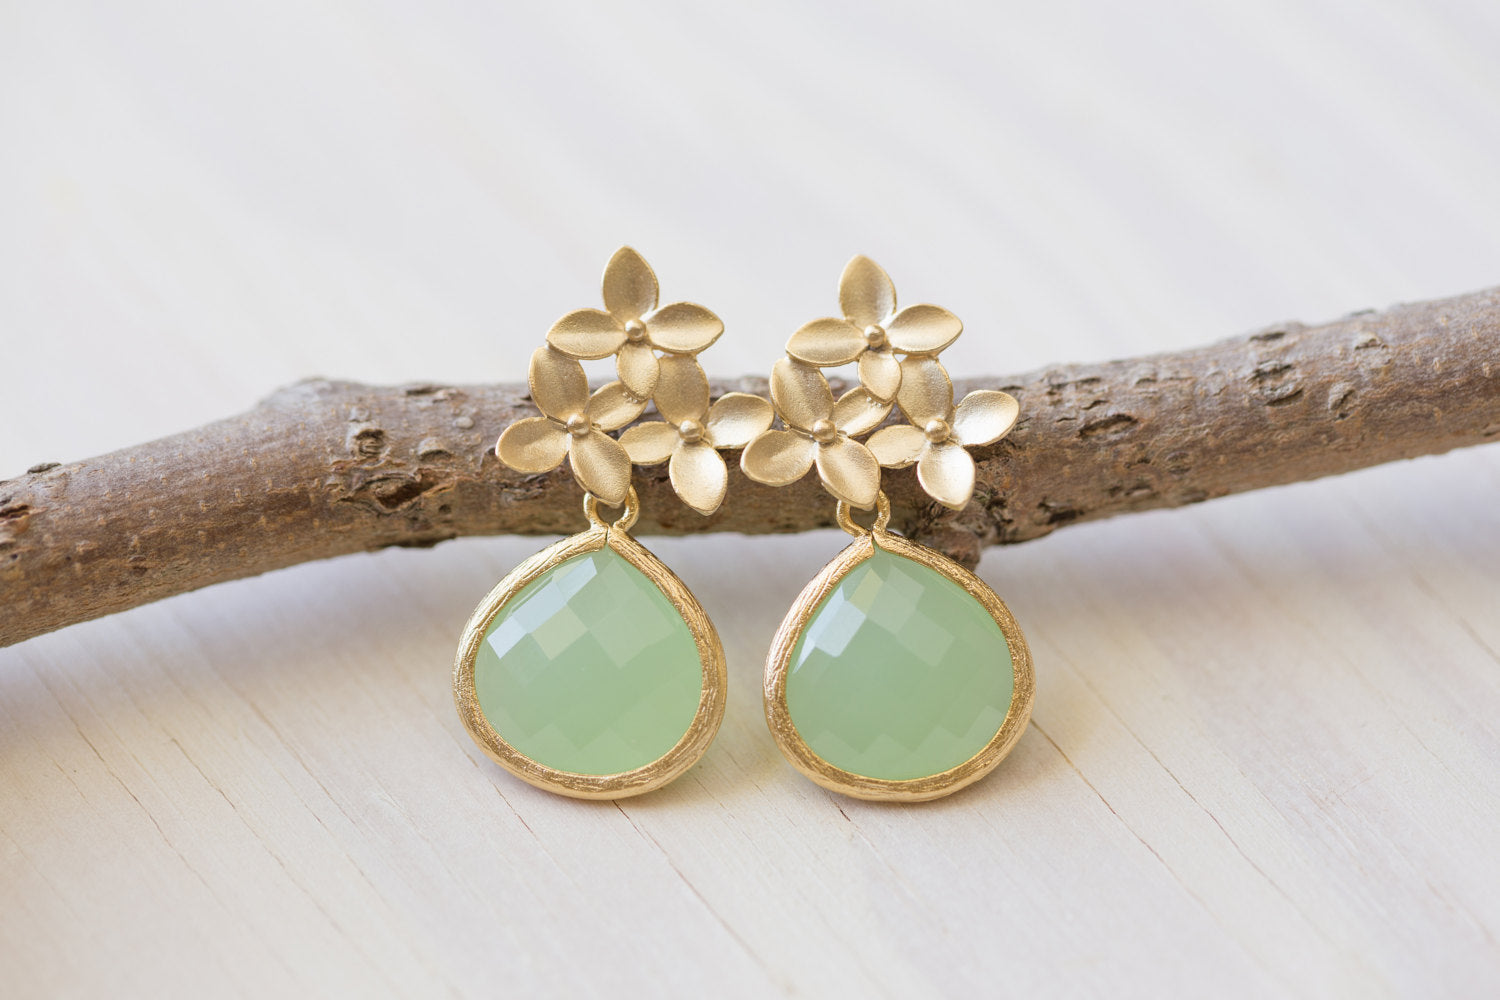 Mint Teardrop and Gold Cherry Blossom Flower Post Earrings. Mint Bridesmaid Earrings. Drop Earrings.